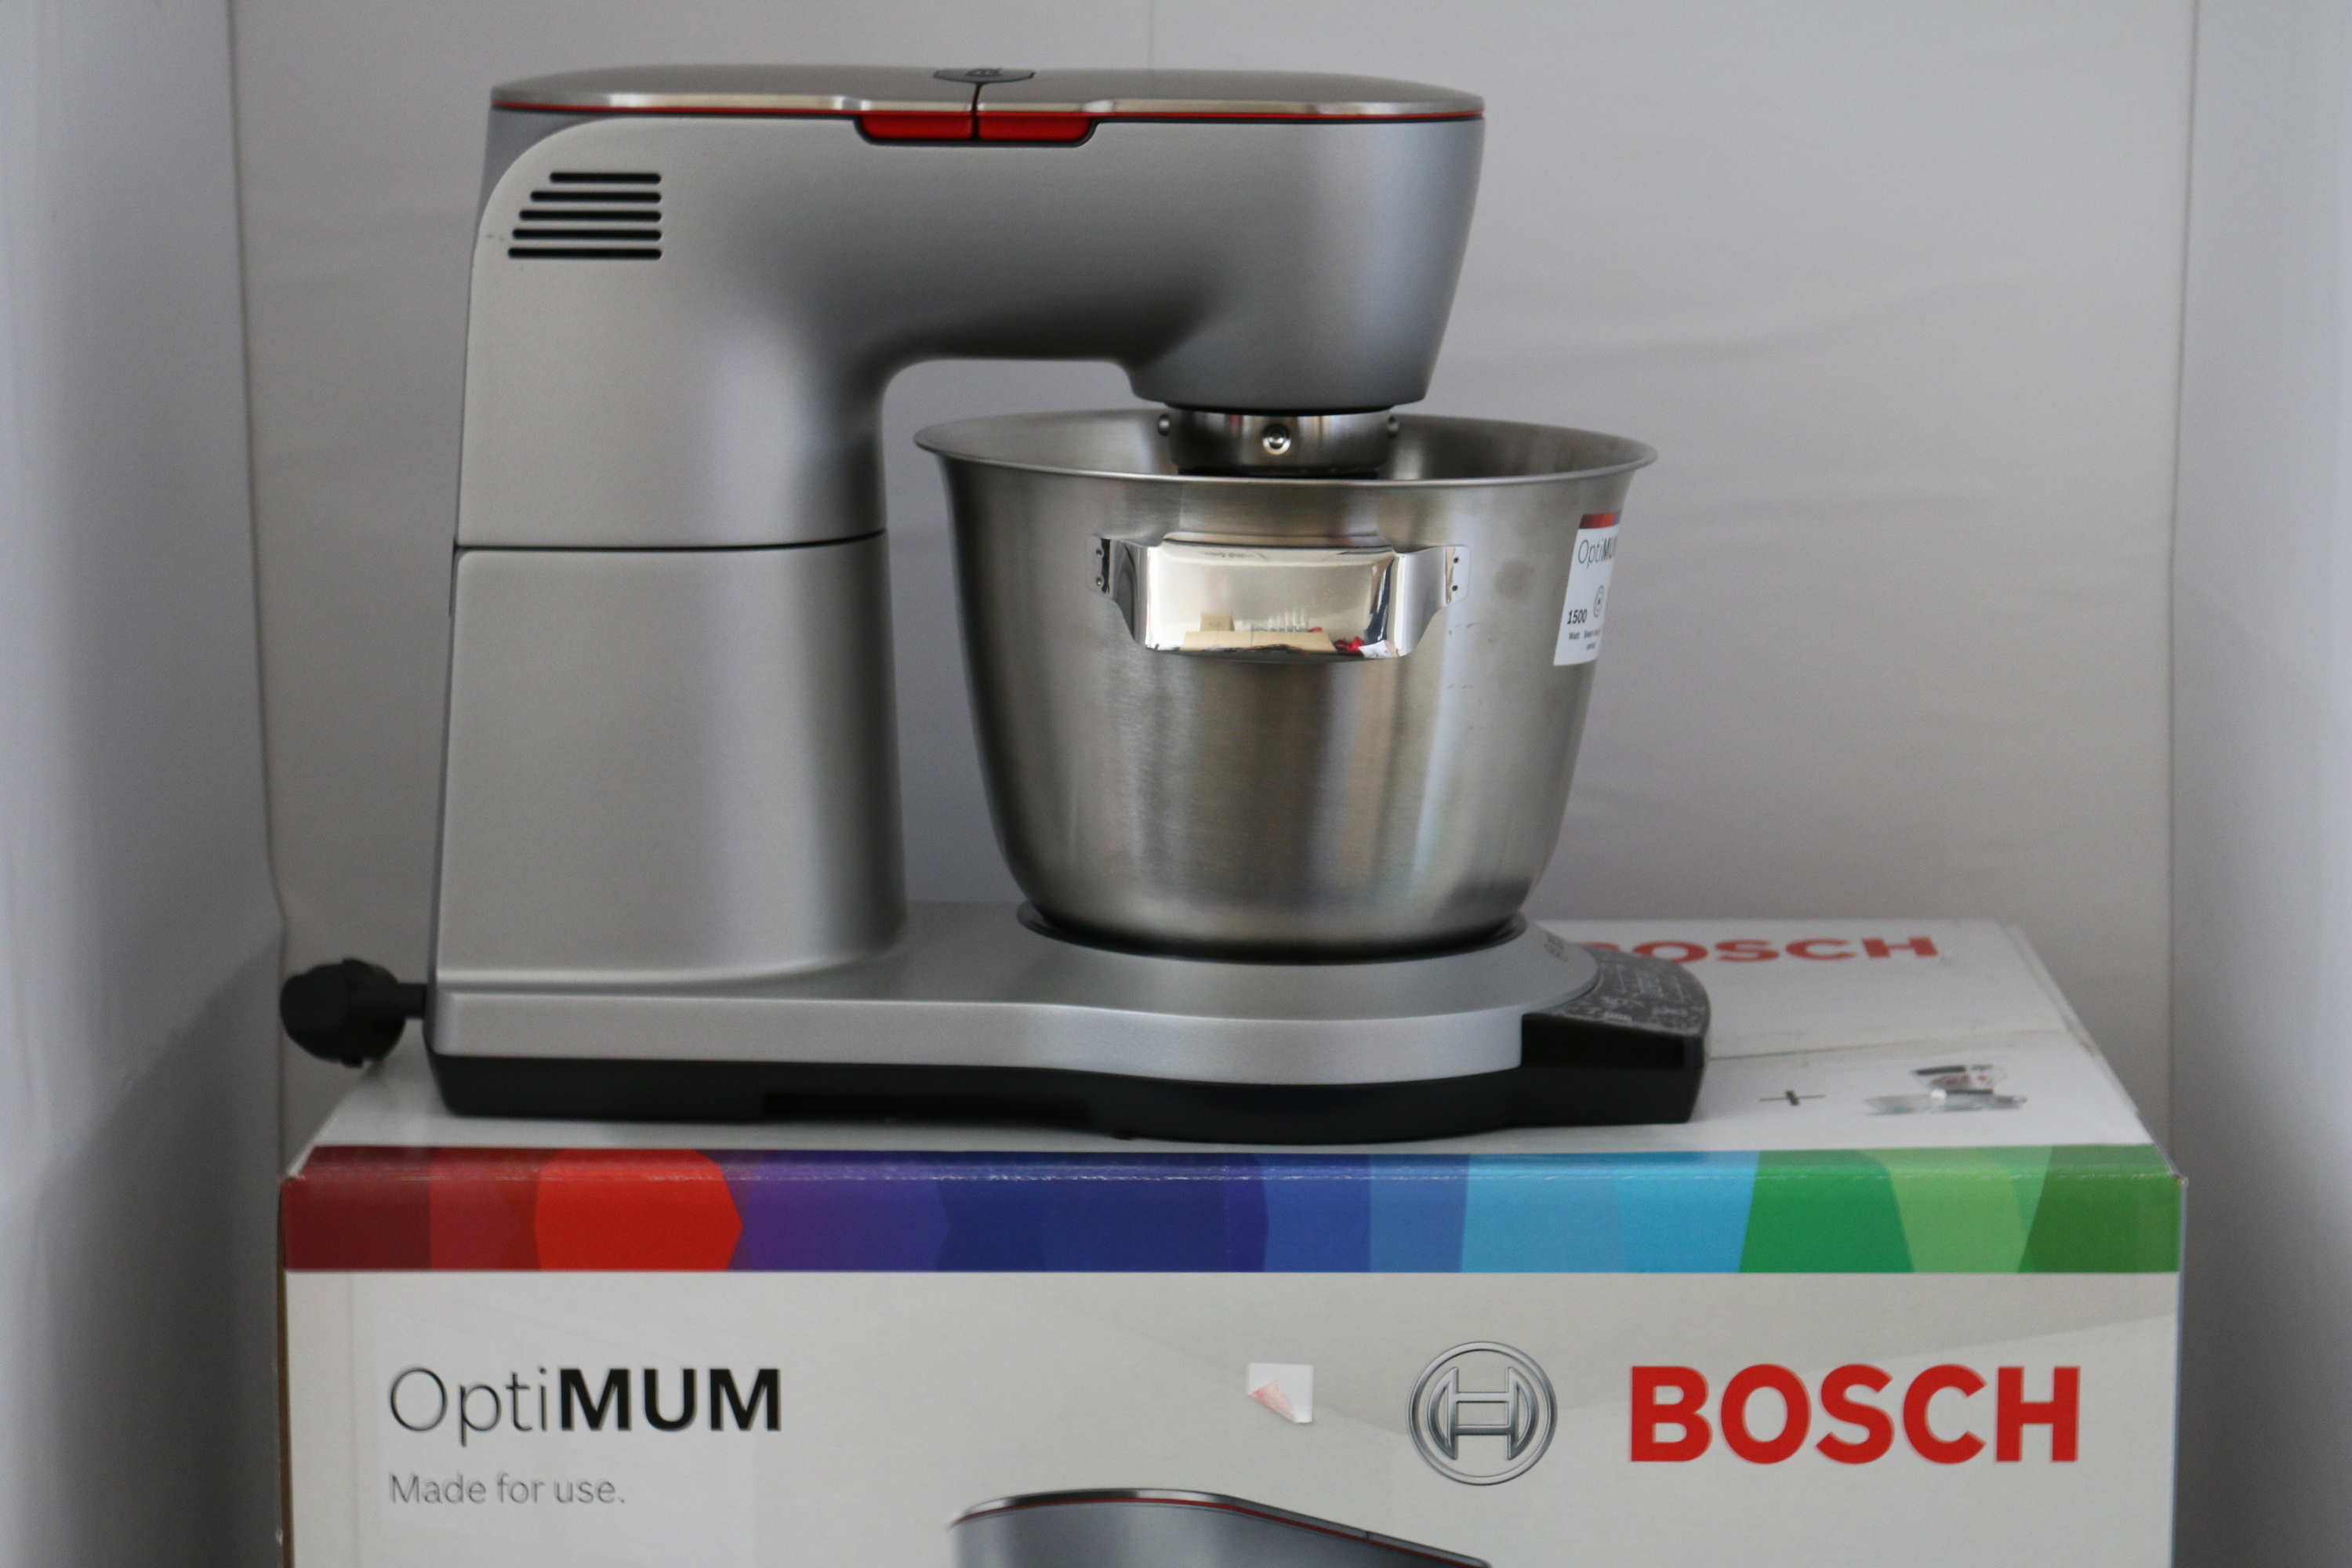 bosch mum 9yx5s12 k chenmaschine watt silver ausstellungsst ck ebay. Black Bedroom Furniture Sets. Home Design Ideas